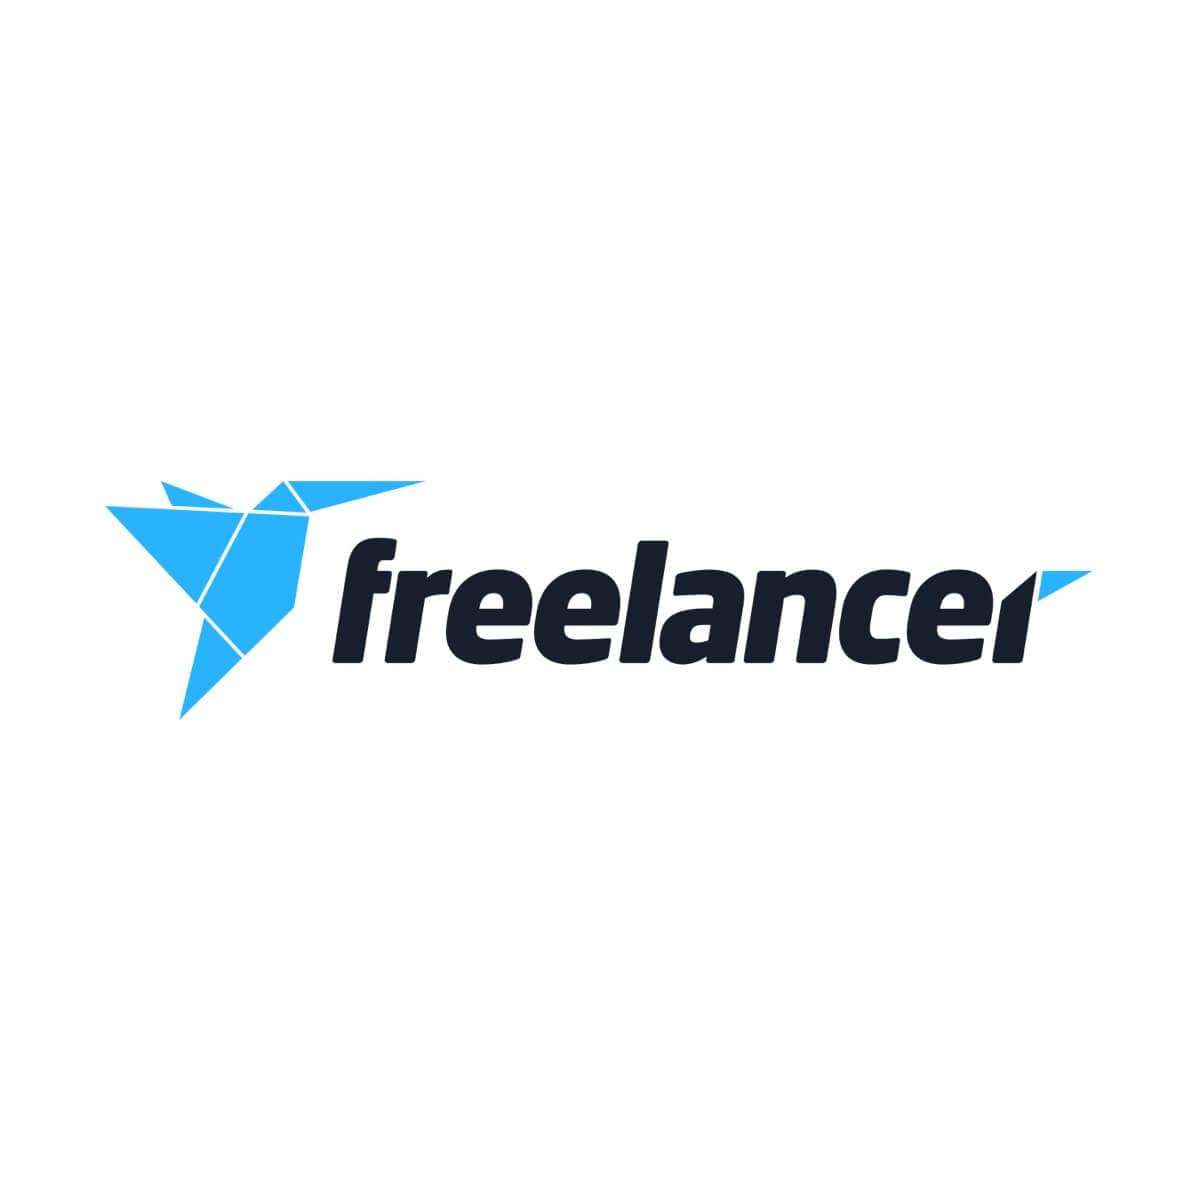 #123 Daily dose : Freelancer APP – Why Surf Swim